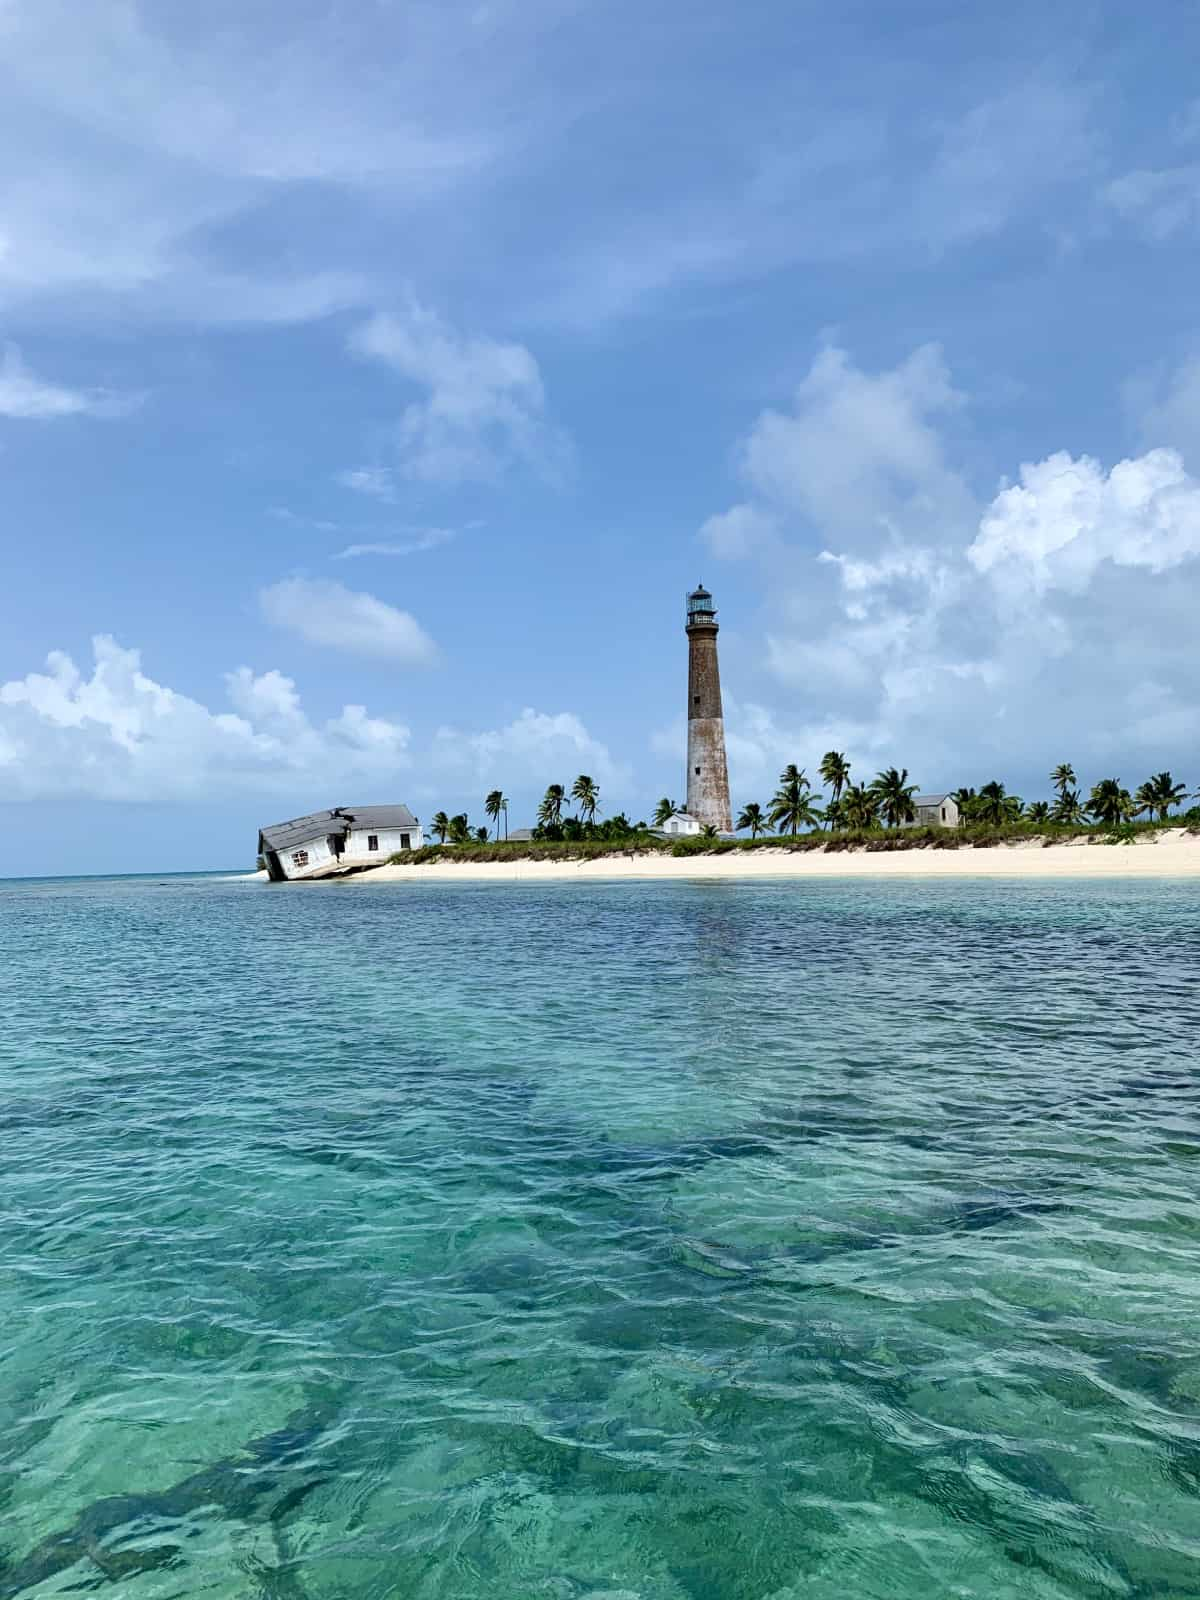 The iconic Loggerhead lighthouse (Dry Tortugas Light) - visiting Florida's Loggerhead Key